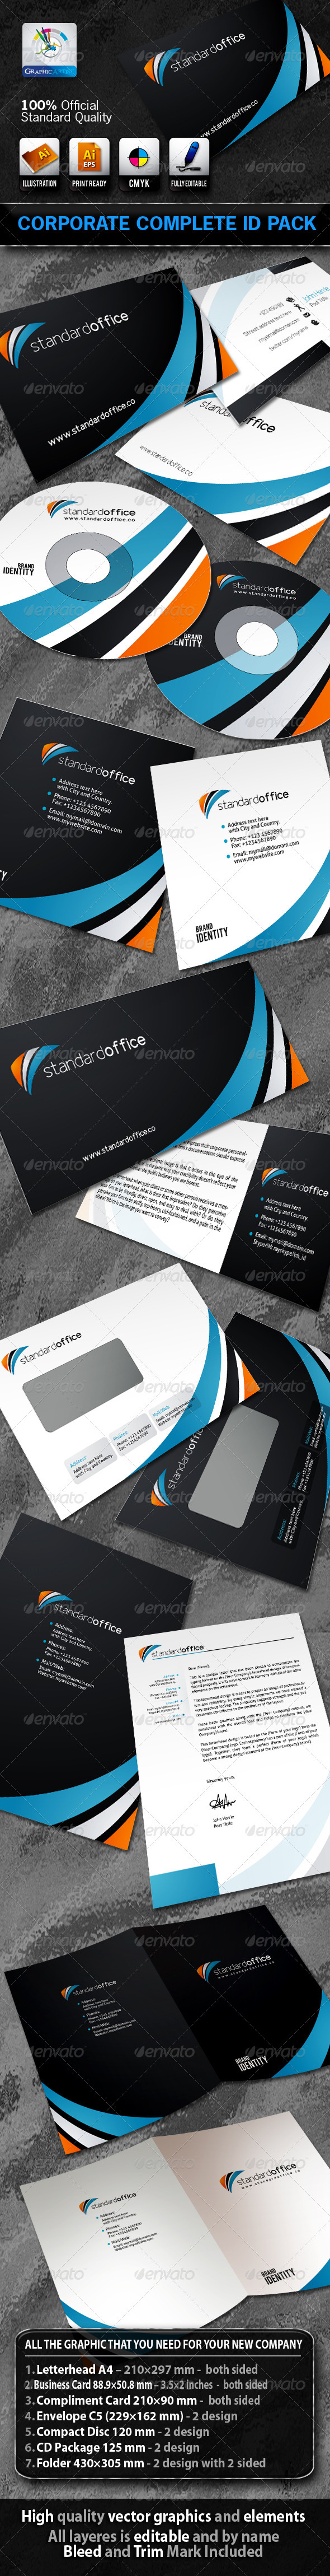 StandardOffice Business Corporate ID Pack + Logo - Stationery Print Templates